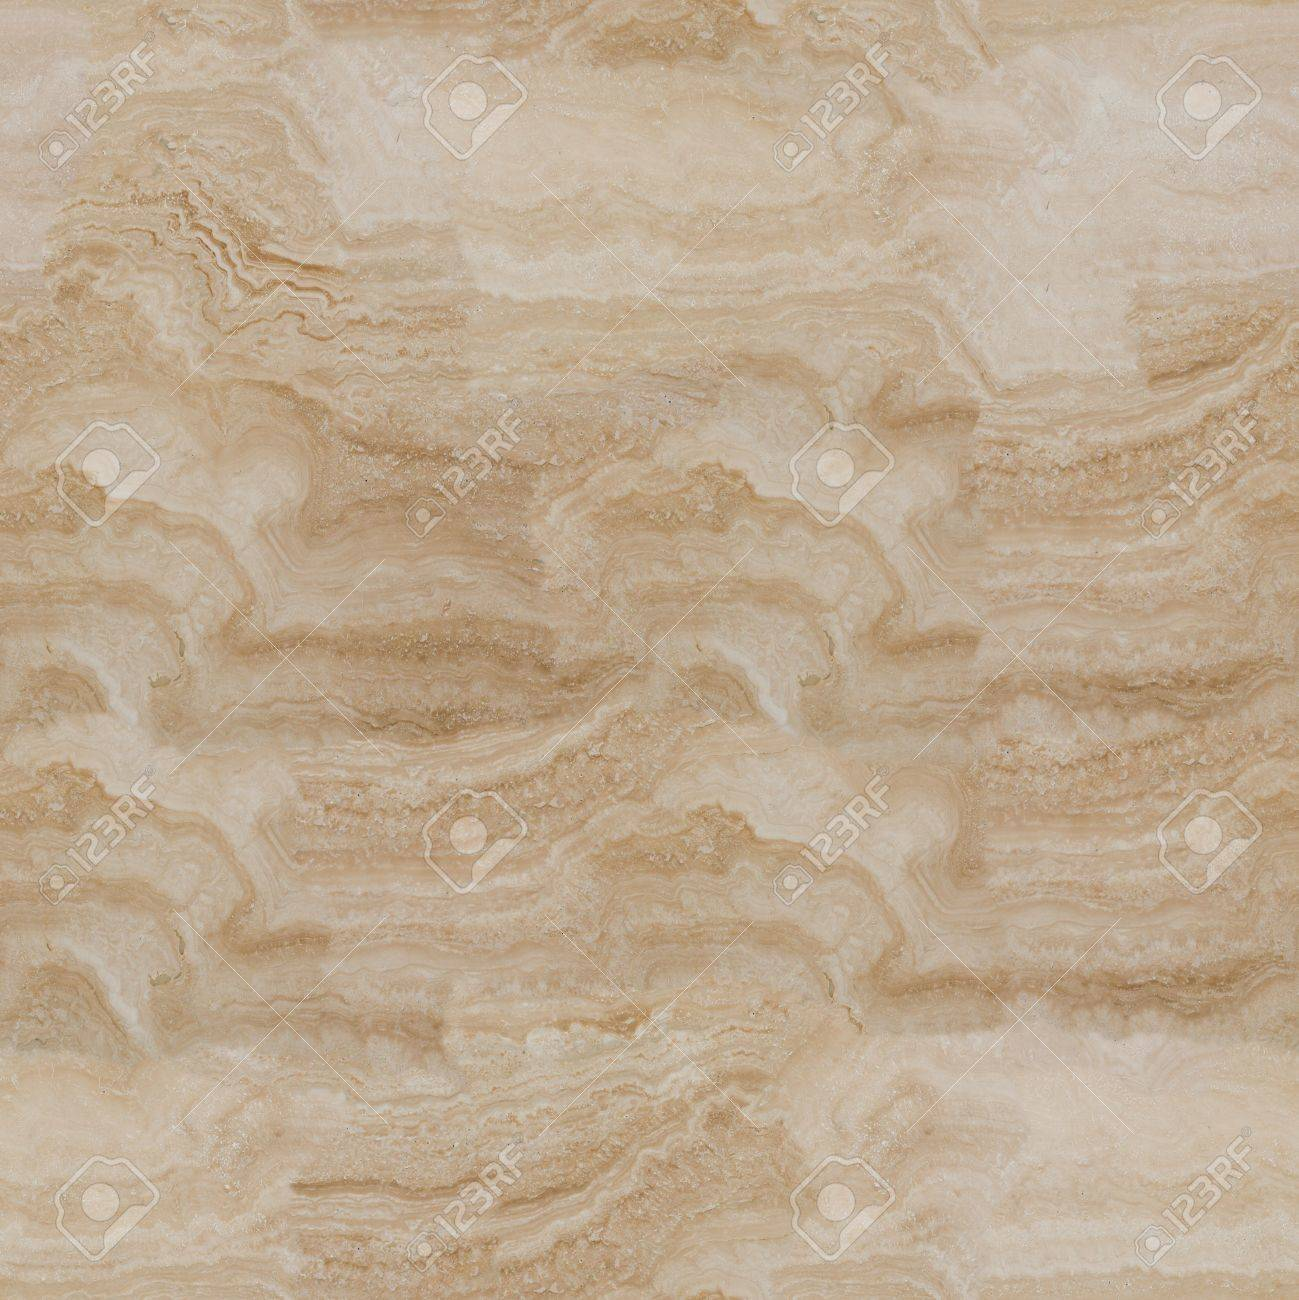 Travertine Stone Floor Tile Abstract Background Close Up Seamless